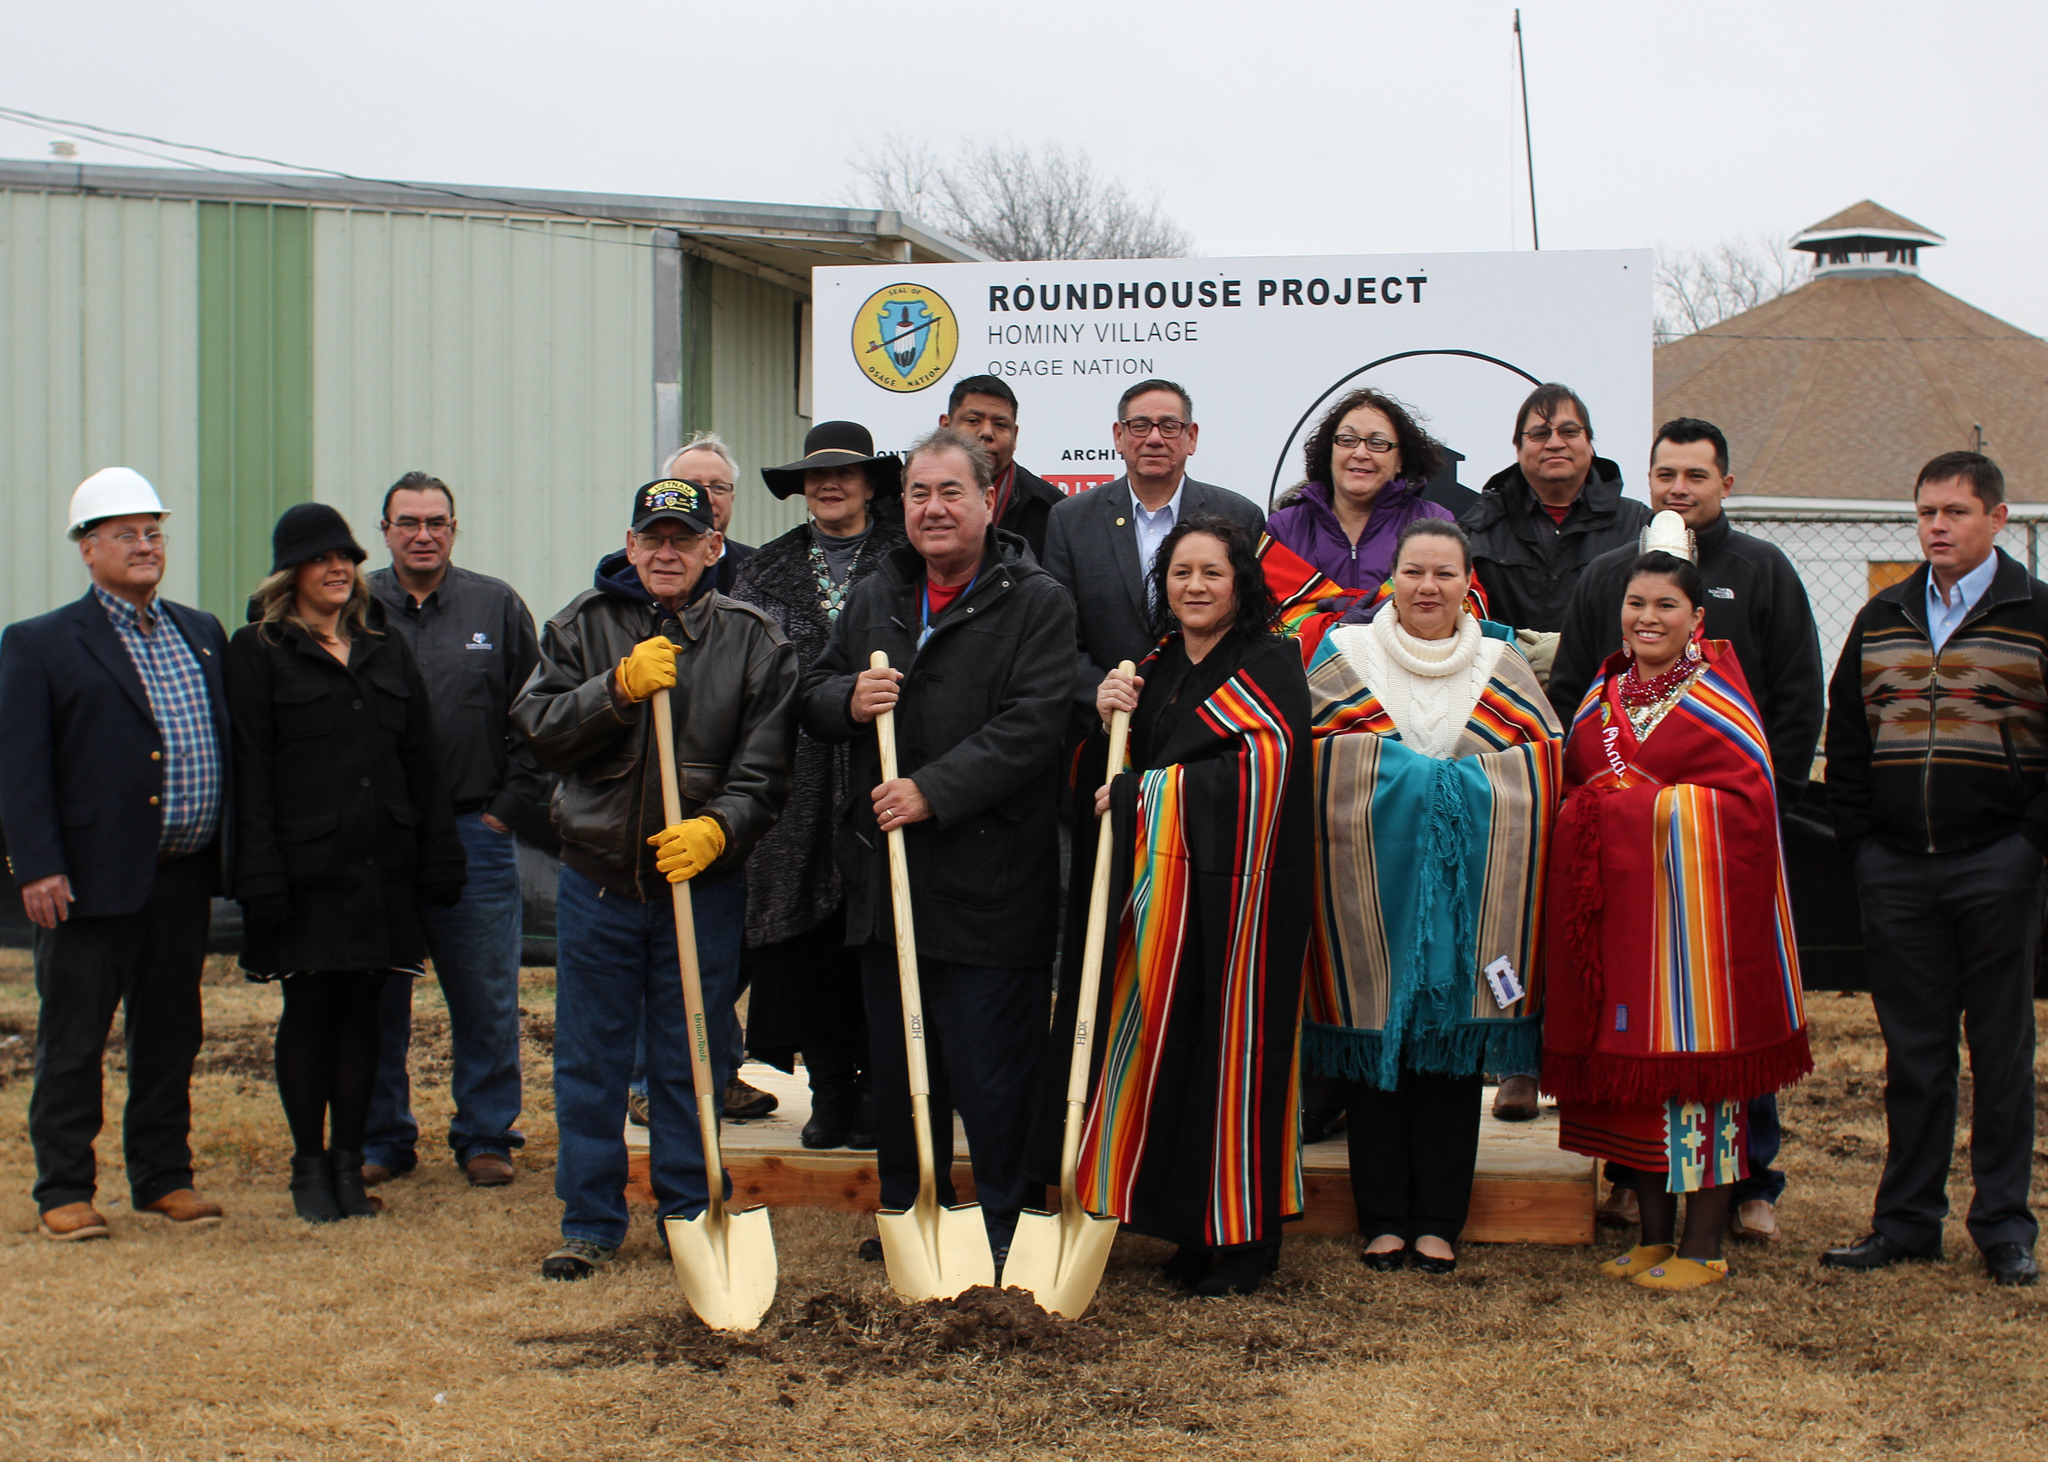 Construction begins on restoration of historic Hominy Roundhouse